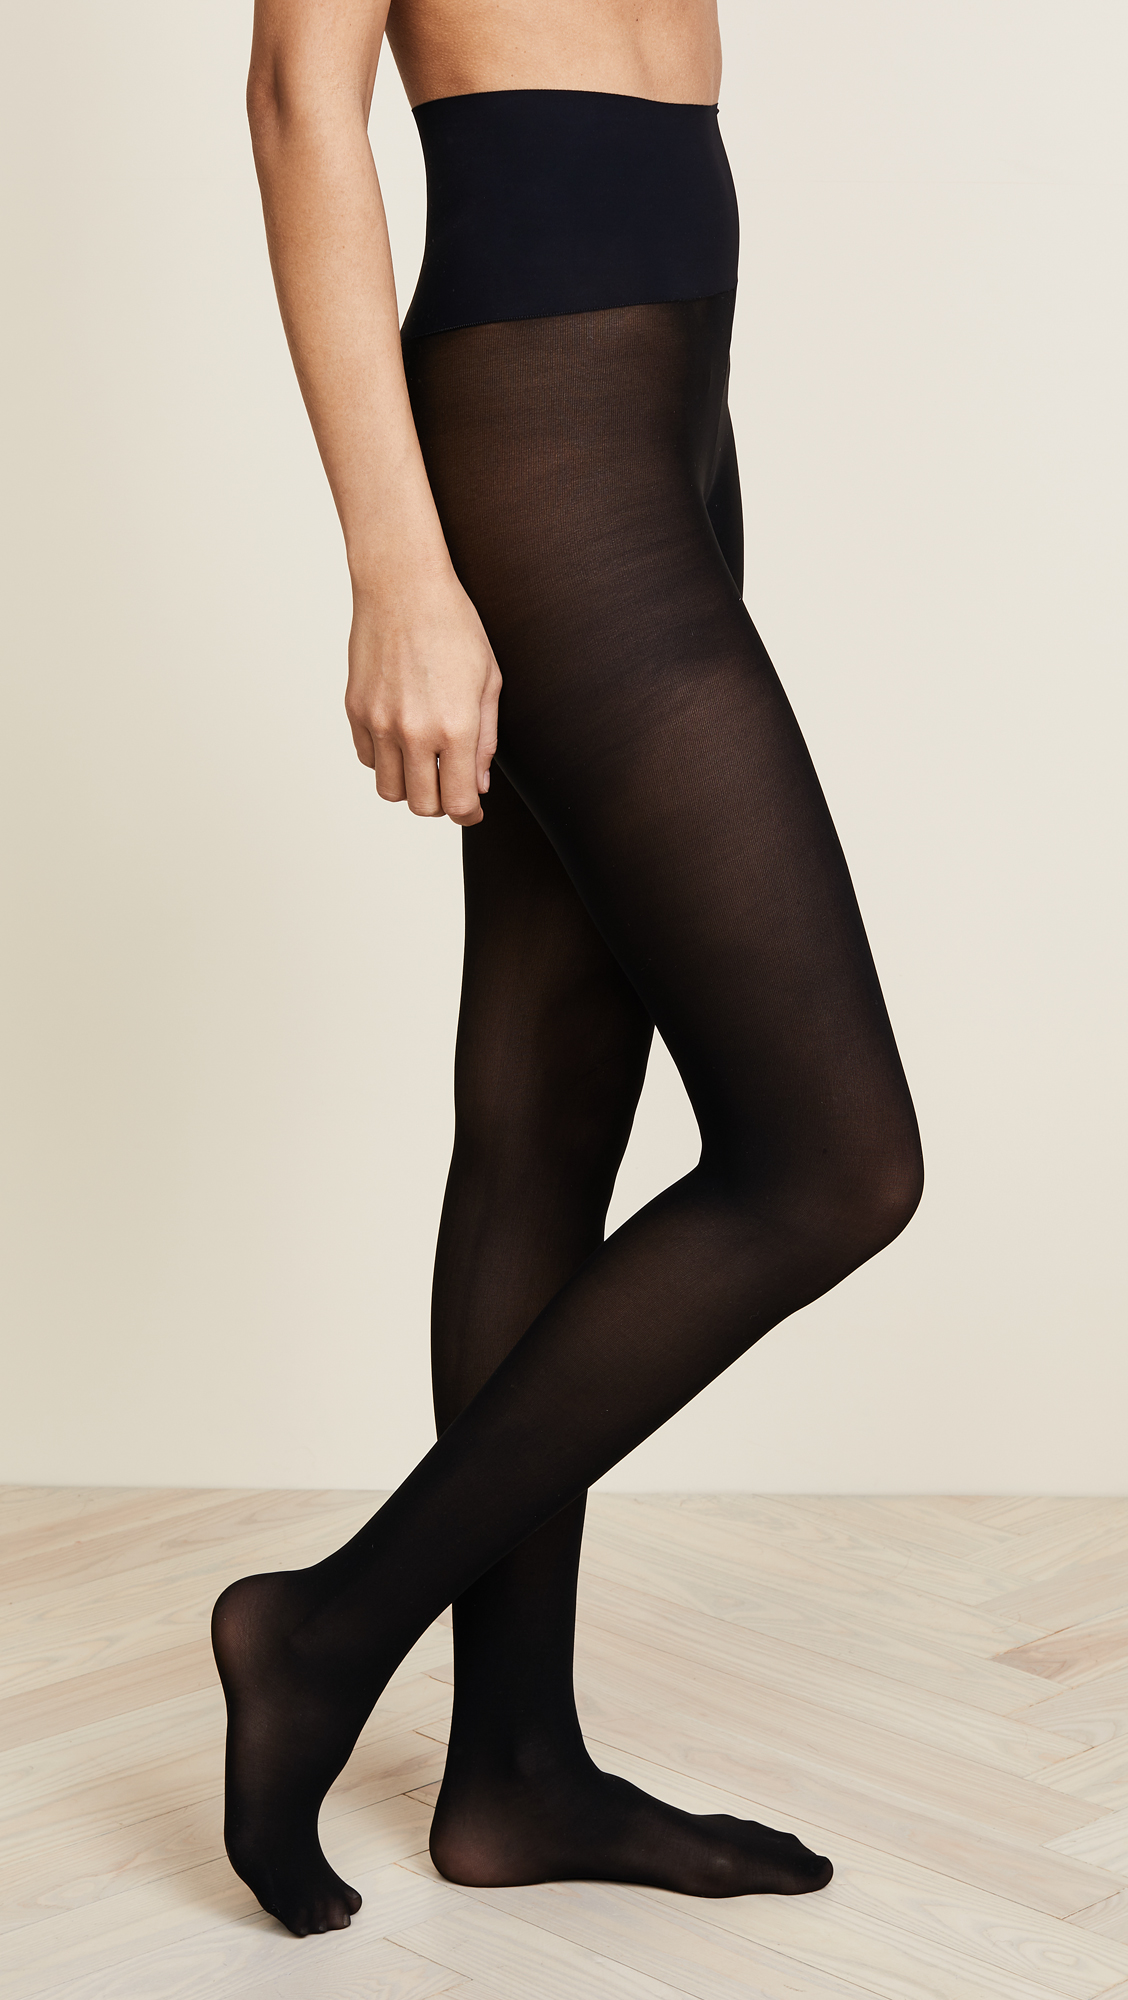 Semi opaque pantyhose sale opinion, this your